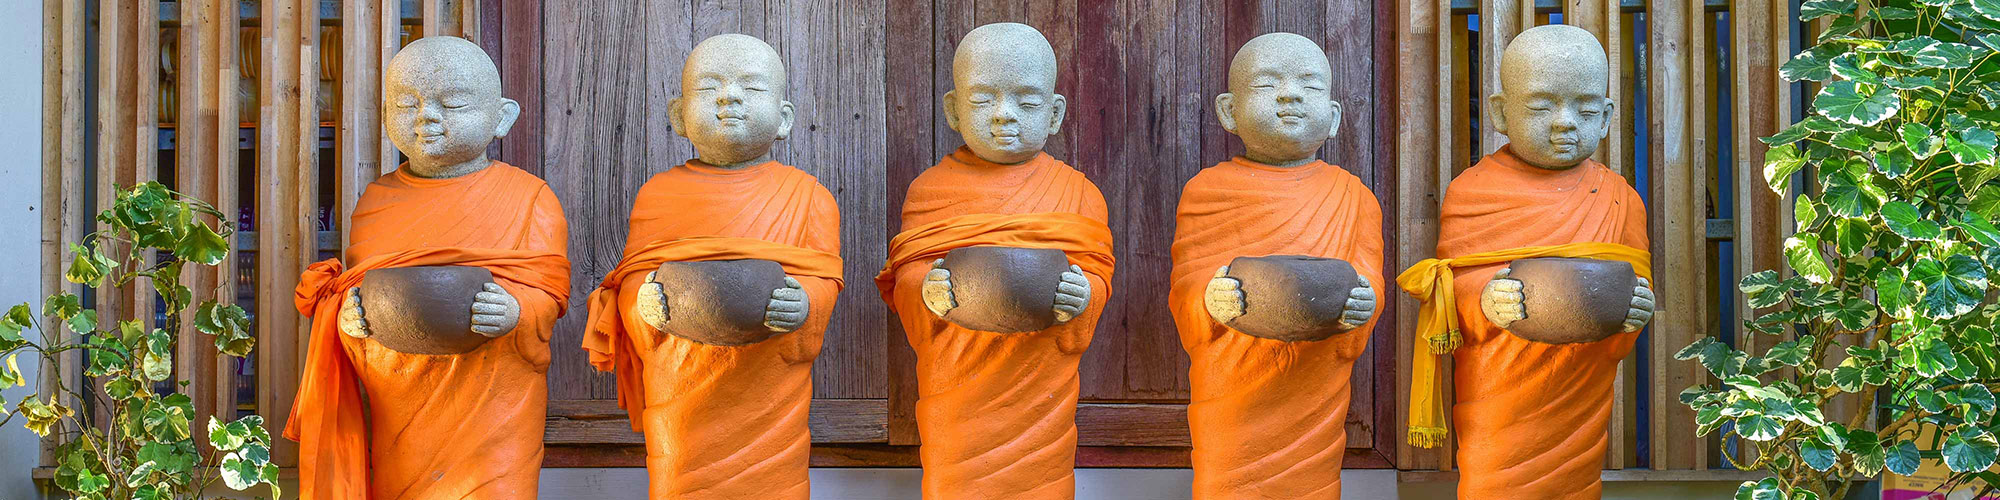 Cambodian Monks Figureens Holding a Bowl